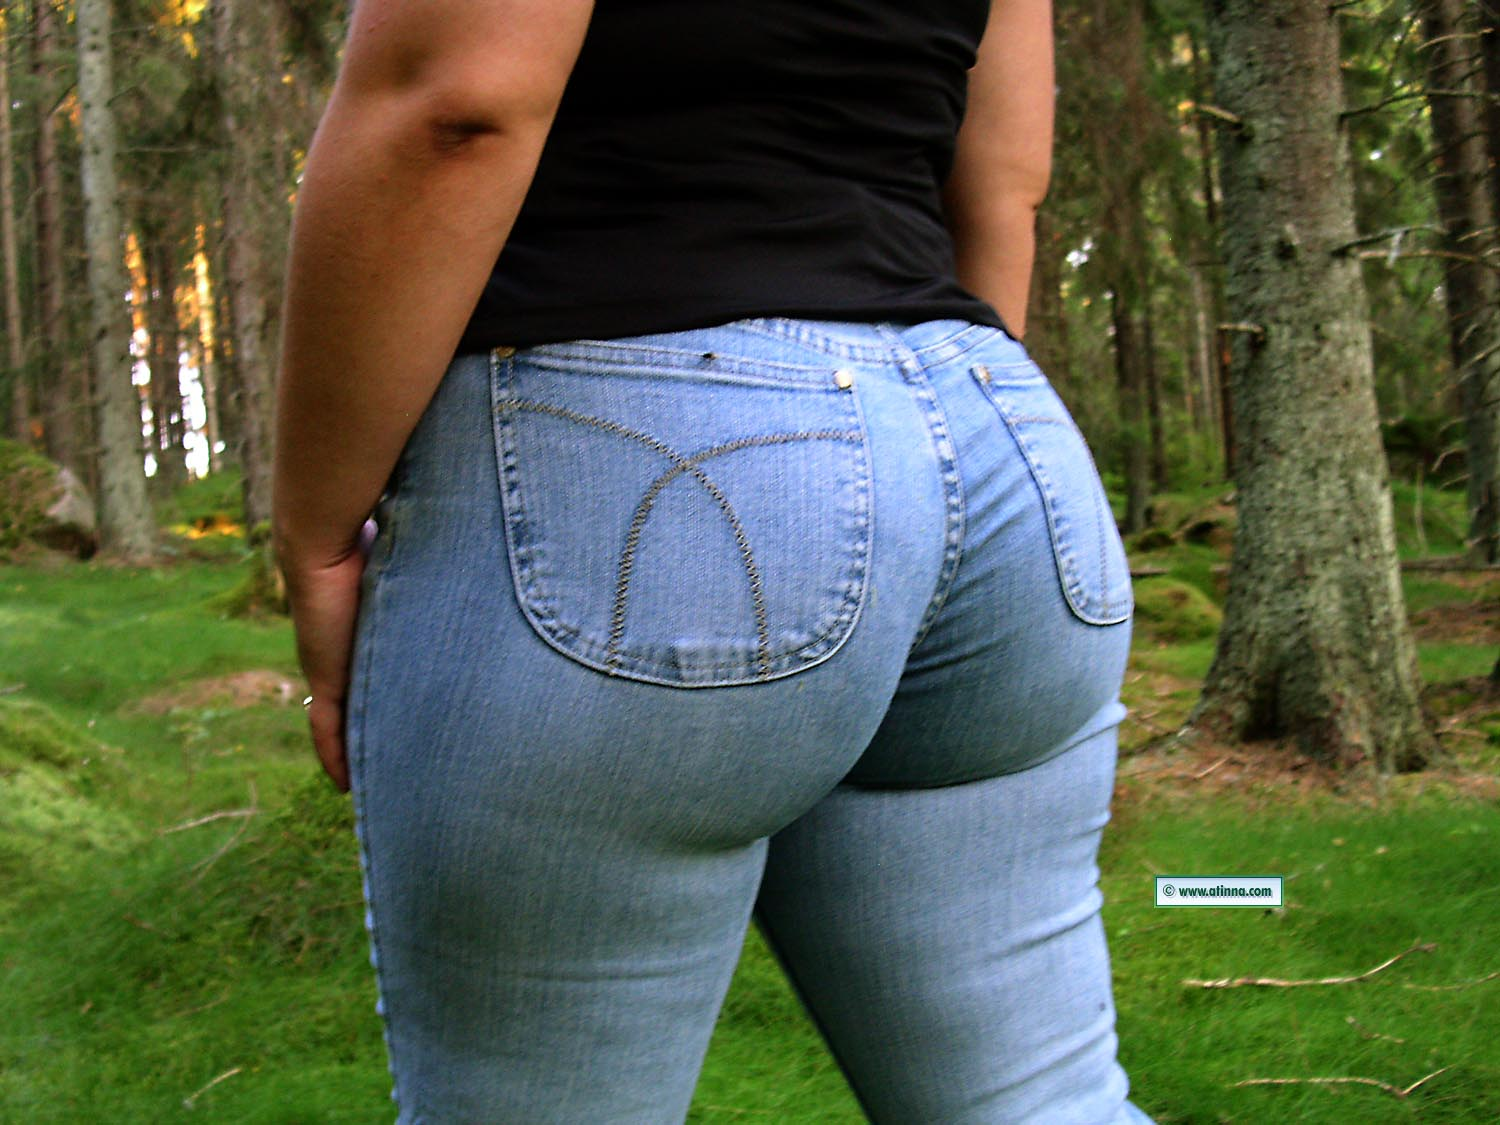 Blue Jeans Big Butt Porn - Perfect ass in jeans - Porn archive